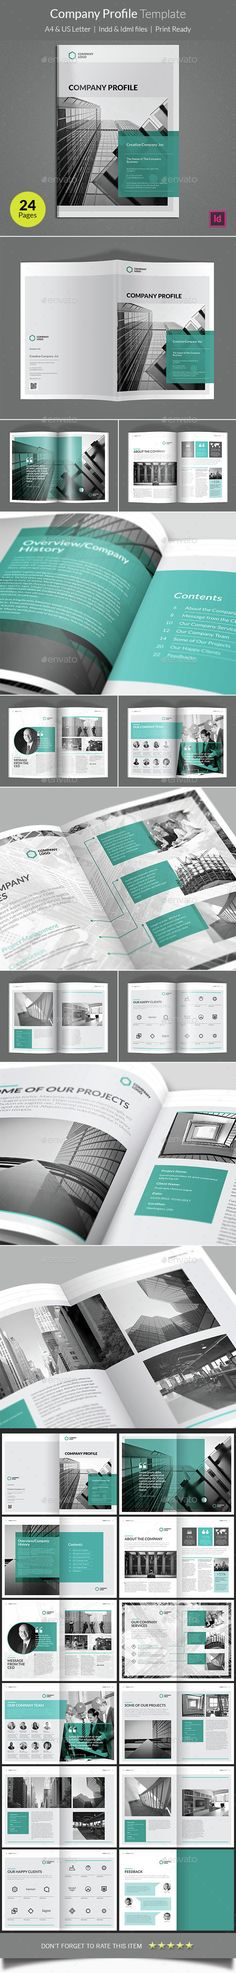 Graphic Design Services - Hire a Graphic Designer Today Company Profile Template, Company Profile Design, Corporate Brochure Design, Brochure Layout, Web Design, Layout Design, Creative Design, Editorial Layout, Editorial Design